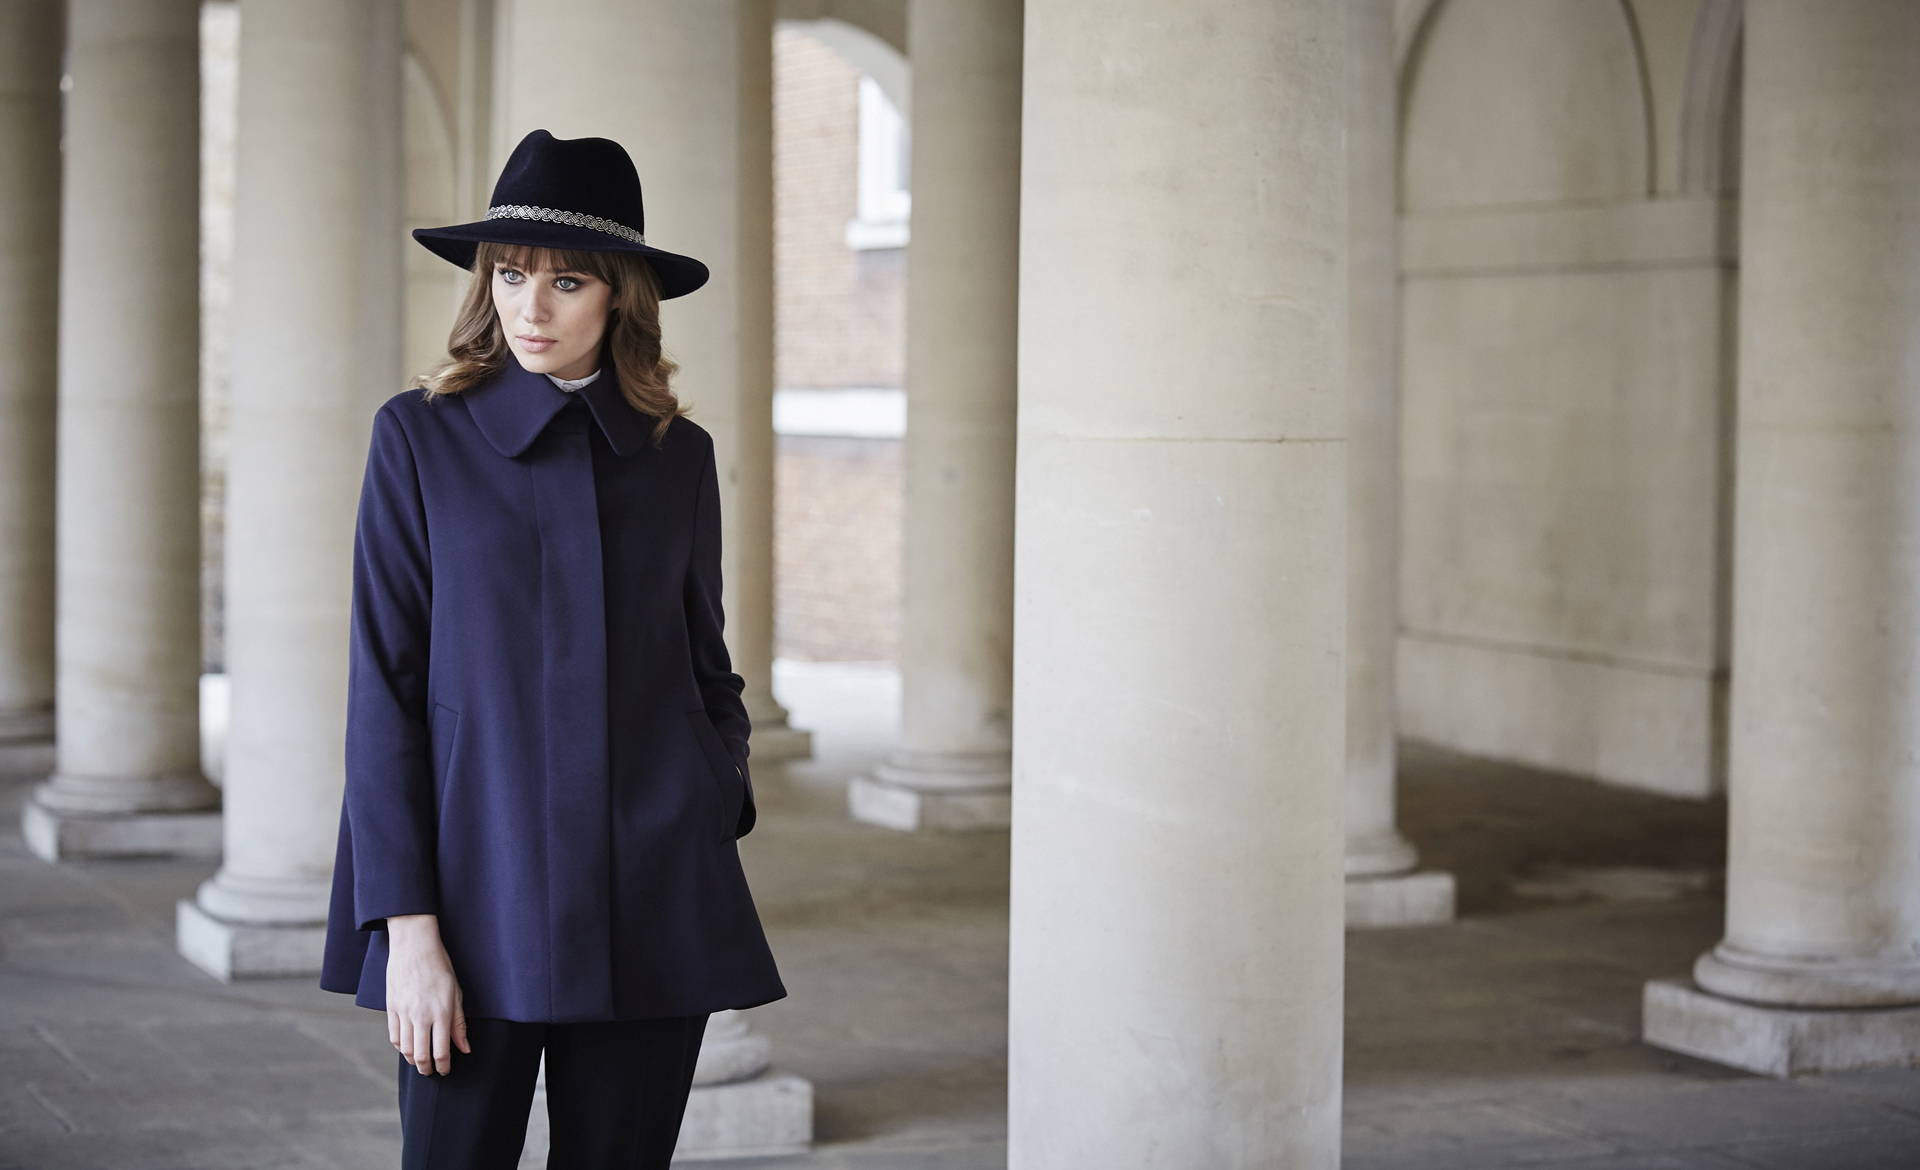 Penmayne of London Women's Hats